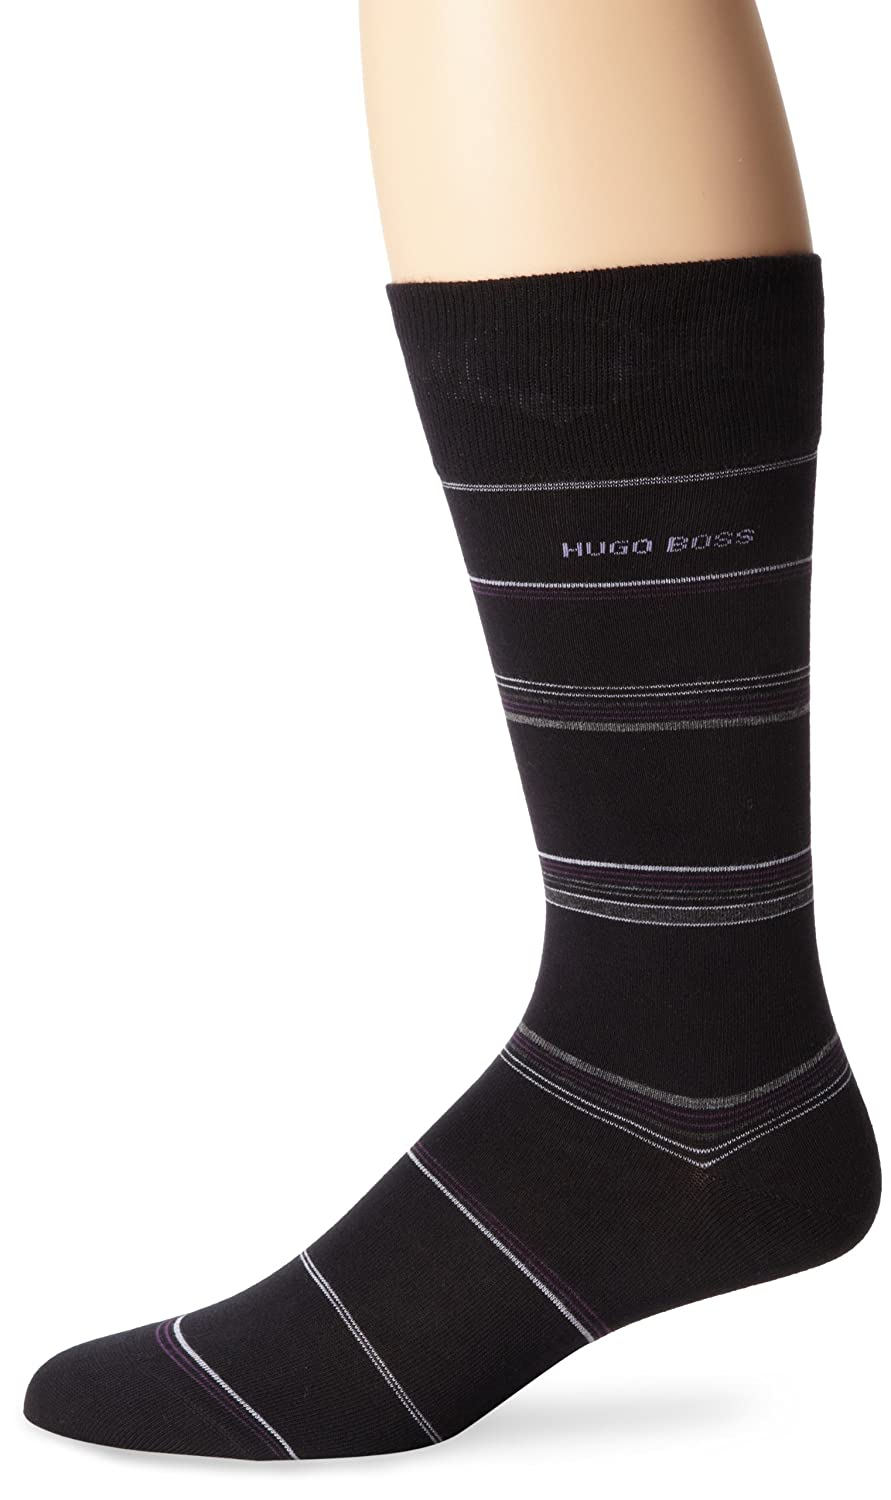 BOSS HUGO BOSS Mens Sock Black//Blue Stripe Sock Size:10-13//Shoe Size 6-12 50246352